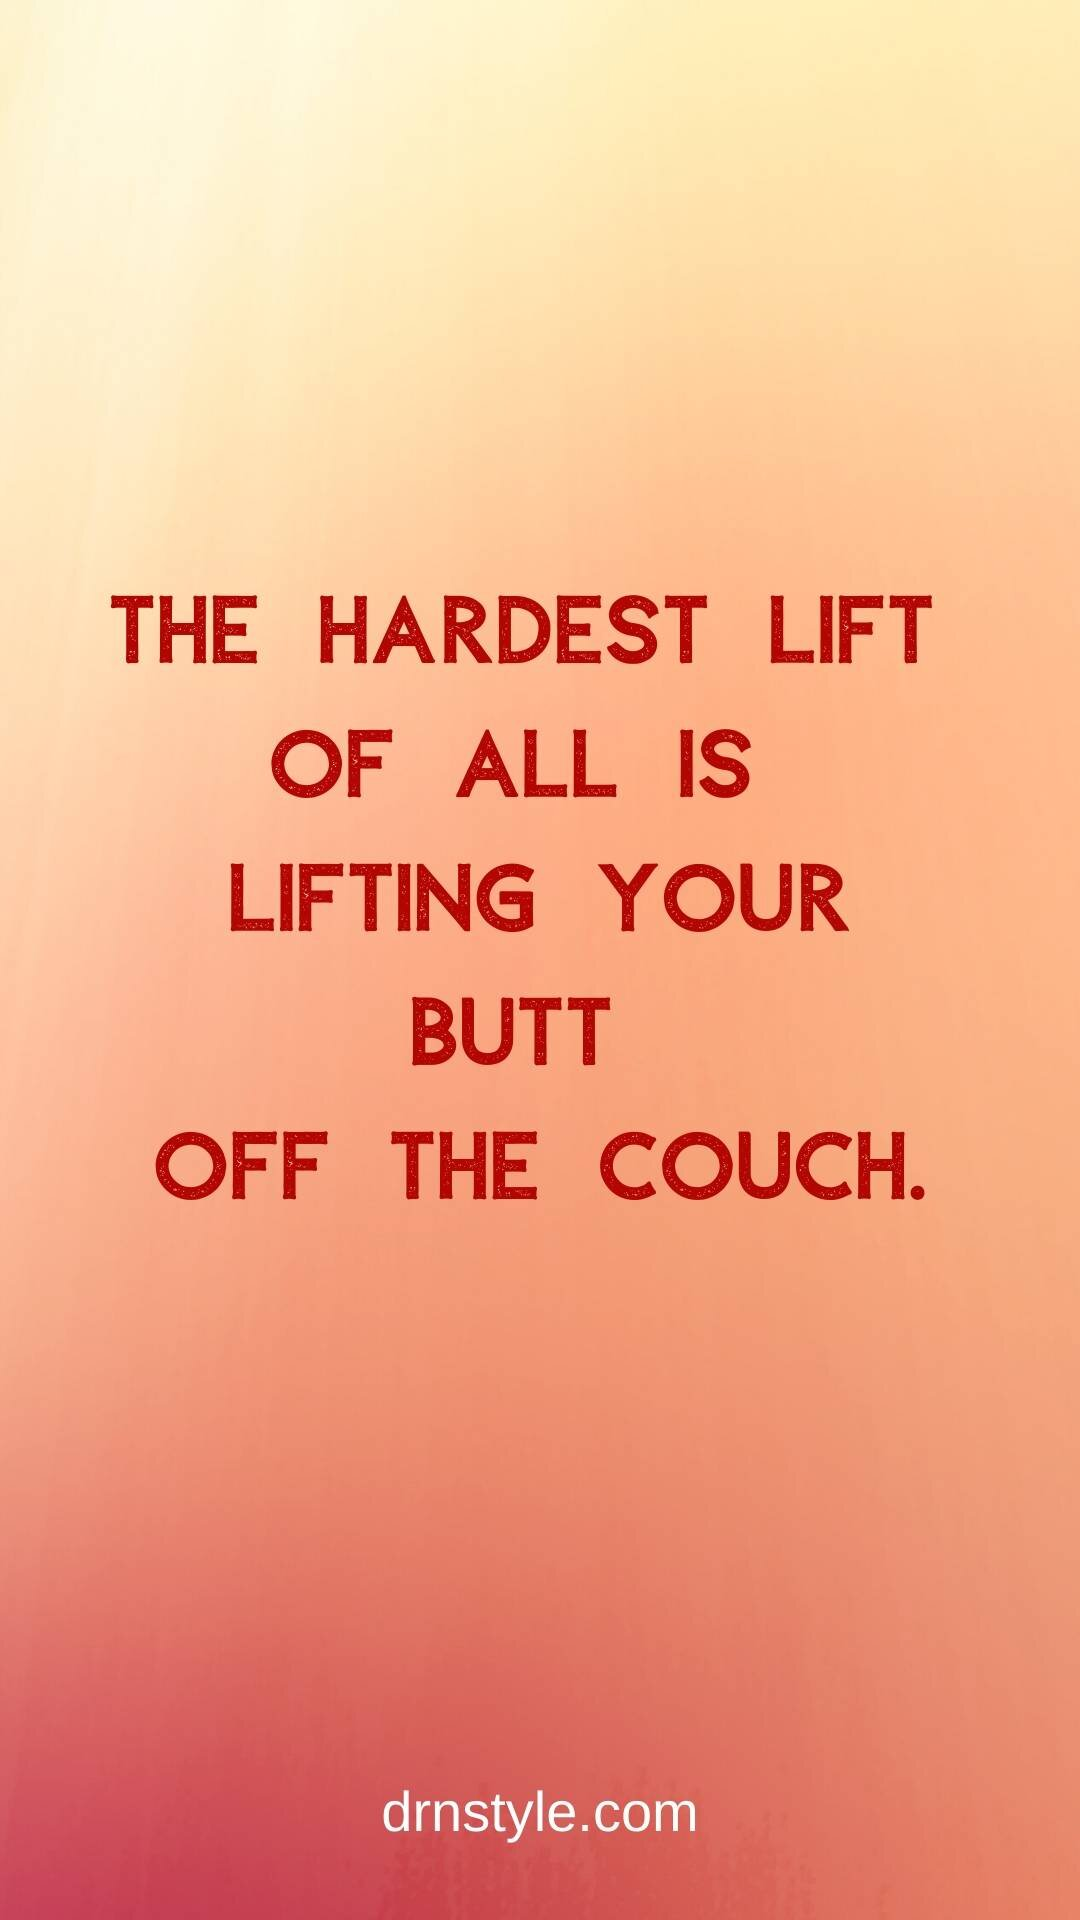 The hardest lift of all is lifting your butt off the couch.